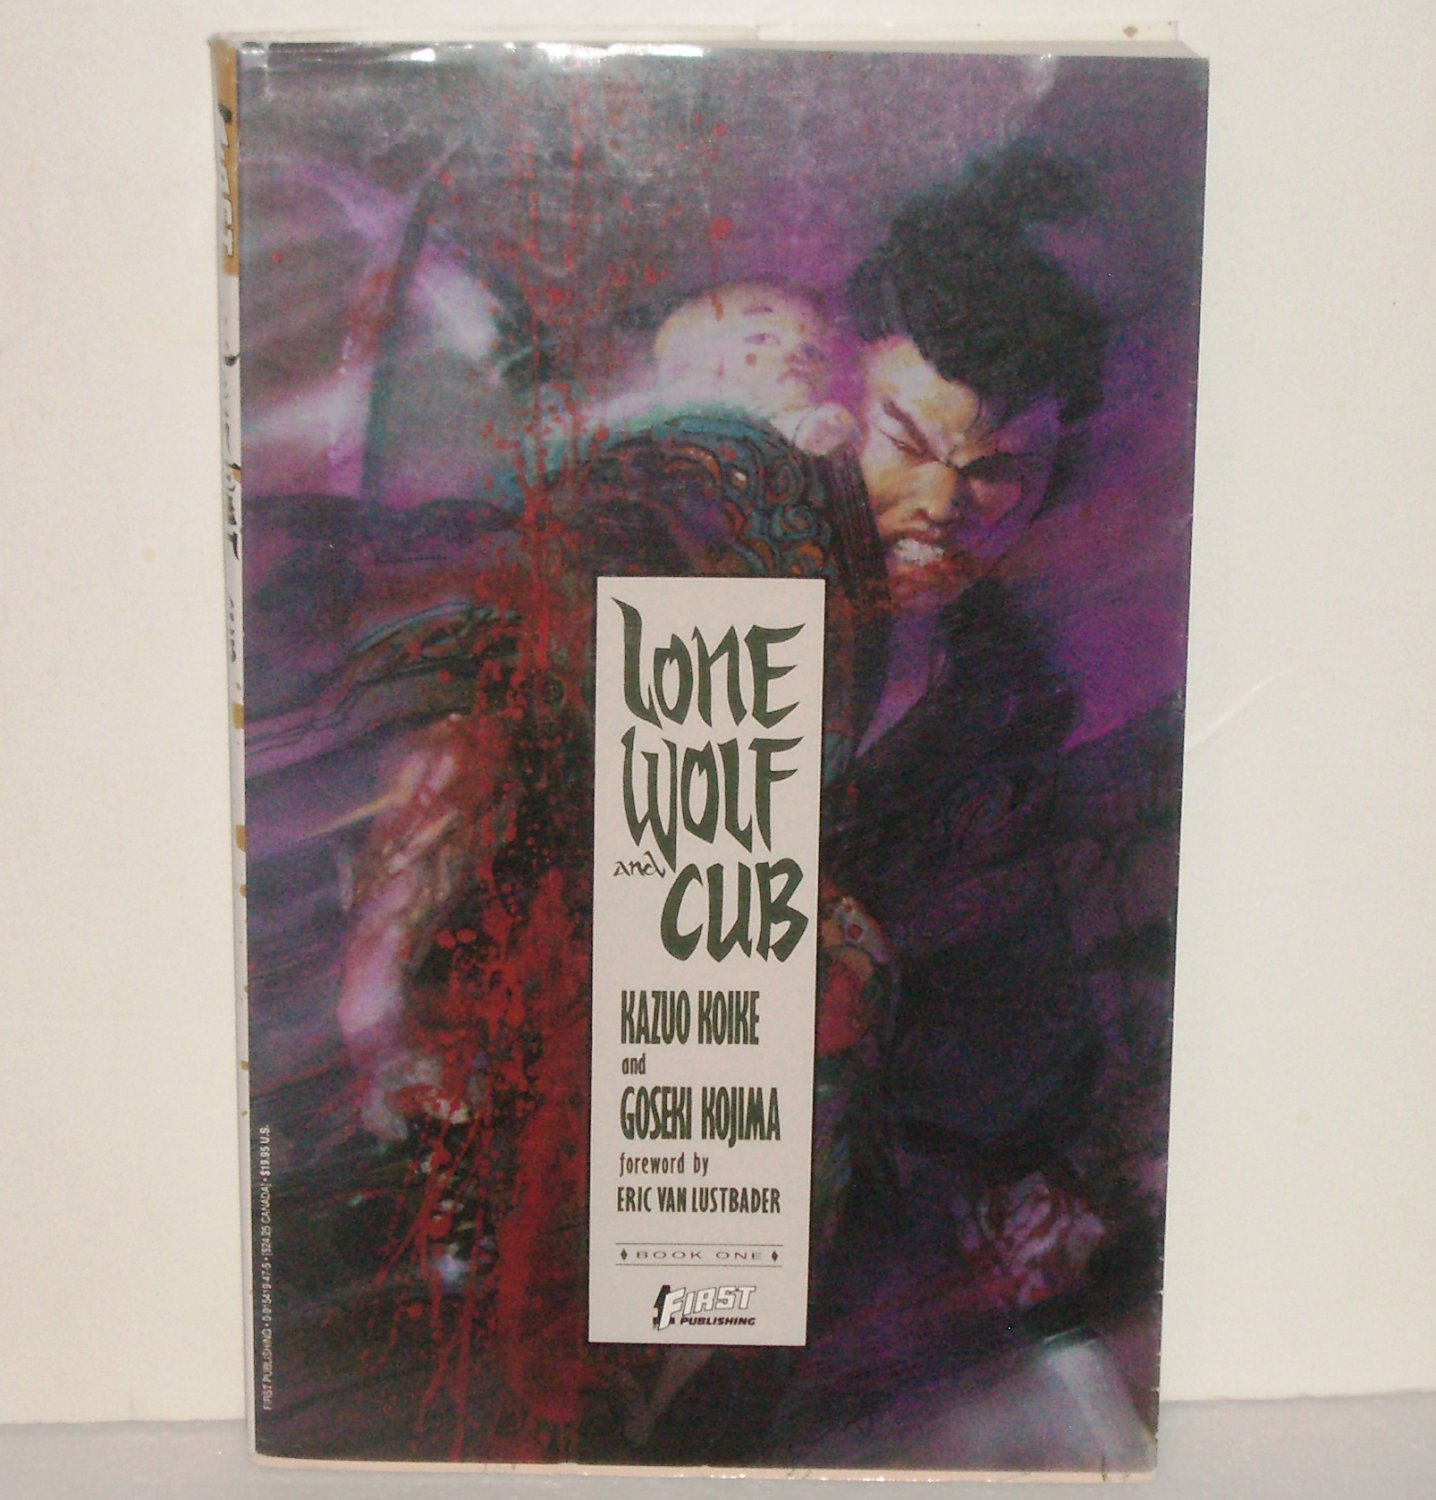 Lone Wolf and Cub by Kazuo Koike Trade Size Manga Paperback with Dust Jacket